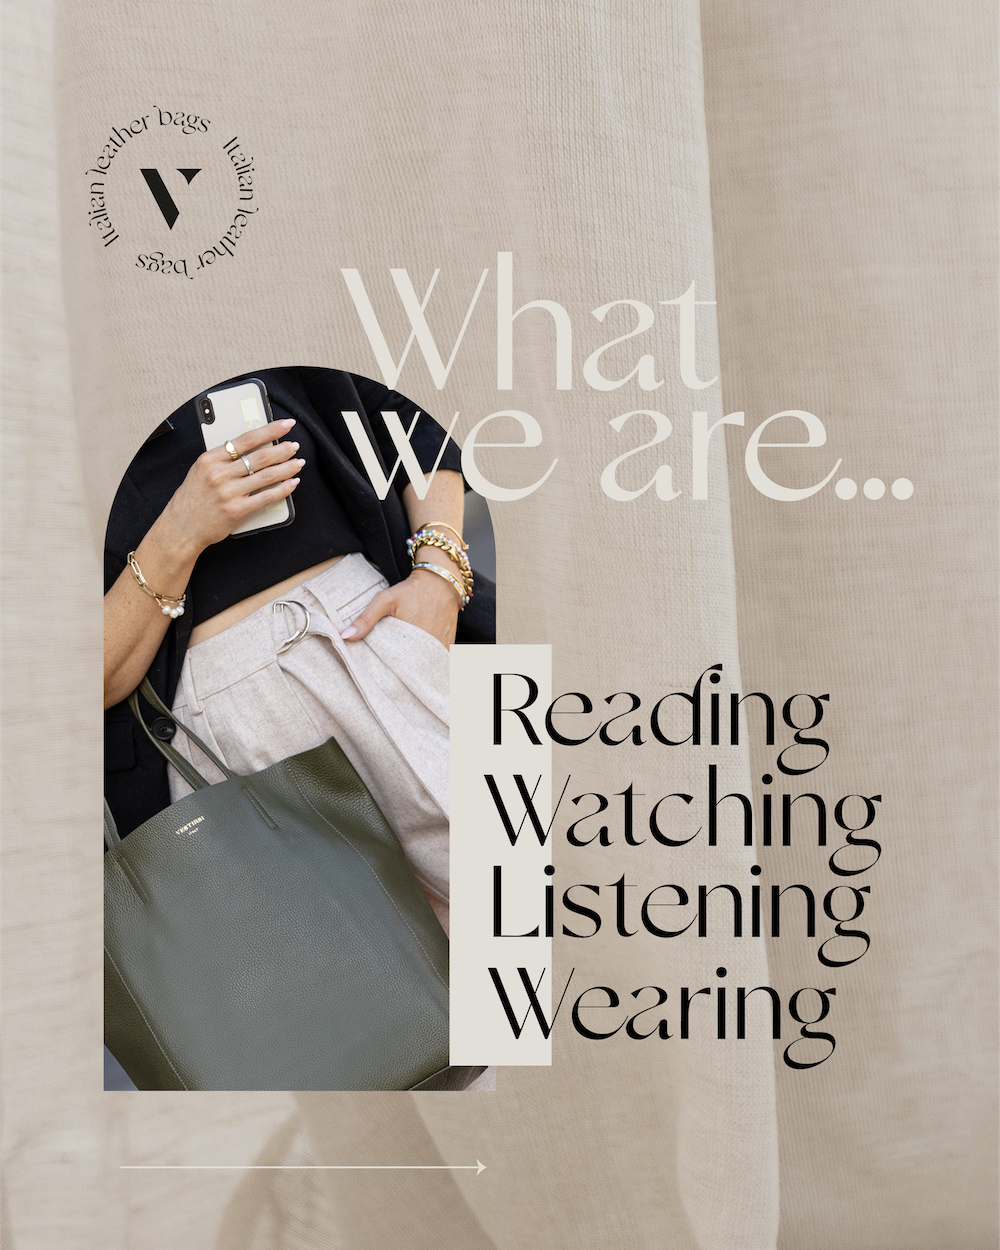 WHAT WE ARE READING WATCHING LISTENING WEARING